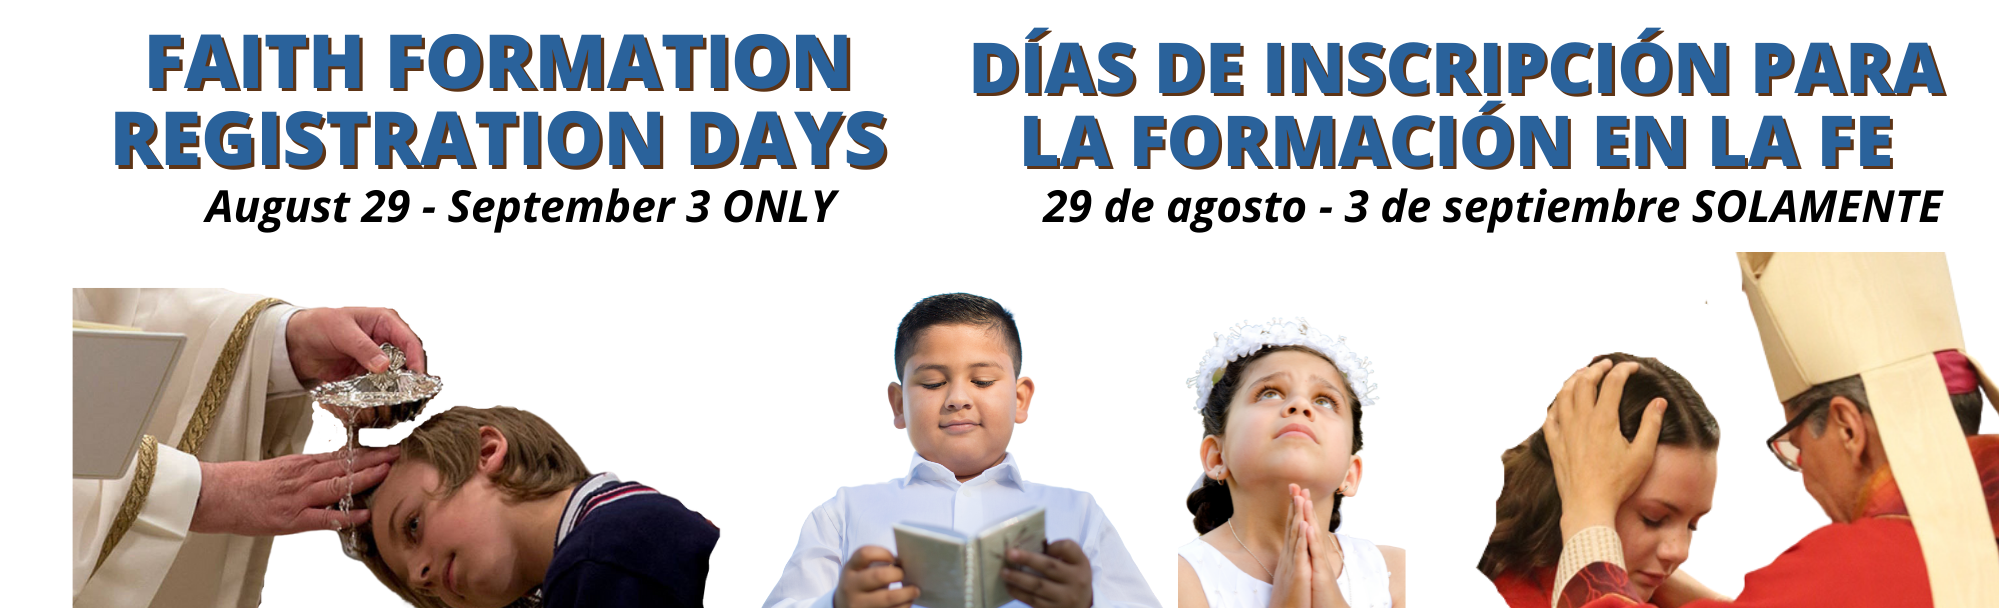 Faith Formation Registration Days Home Page